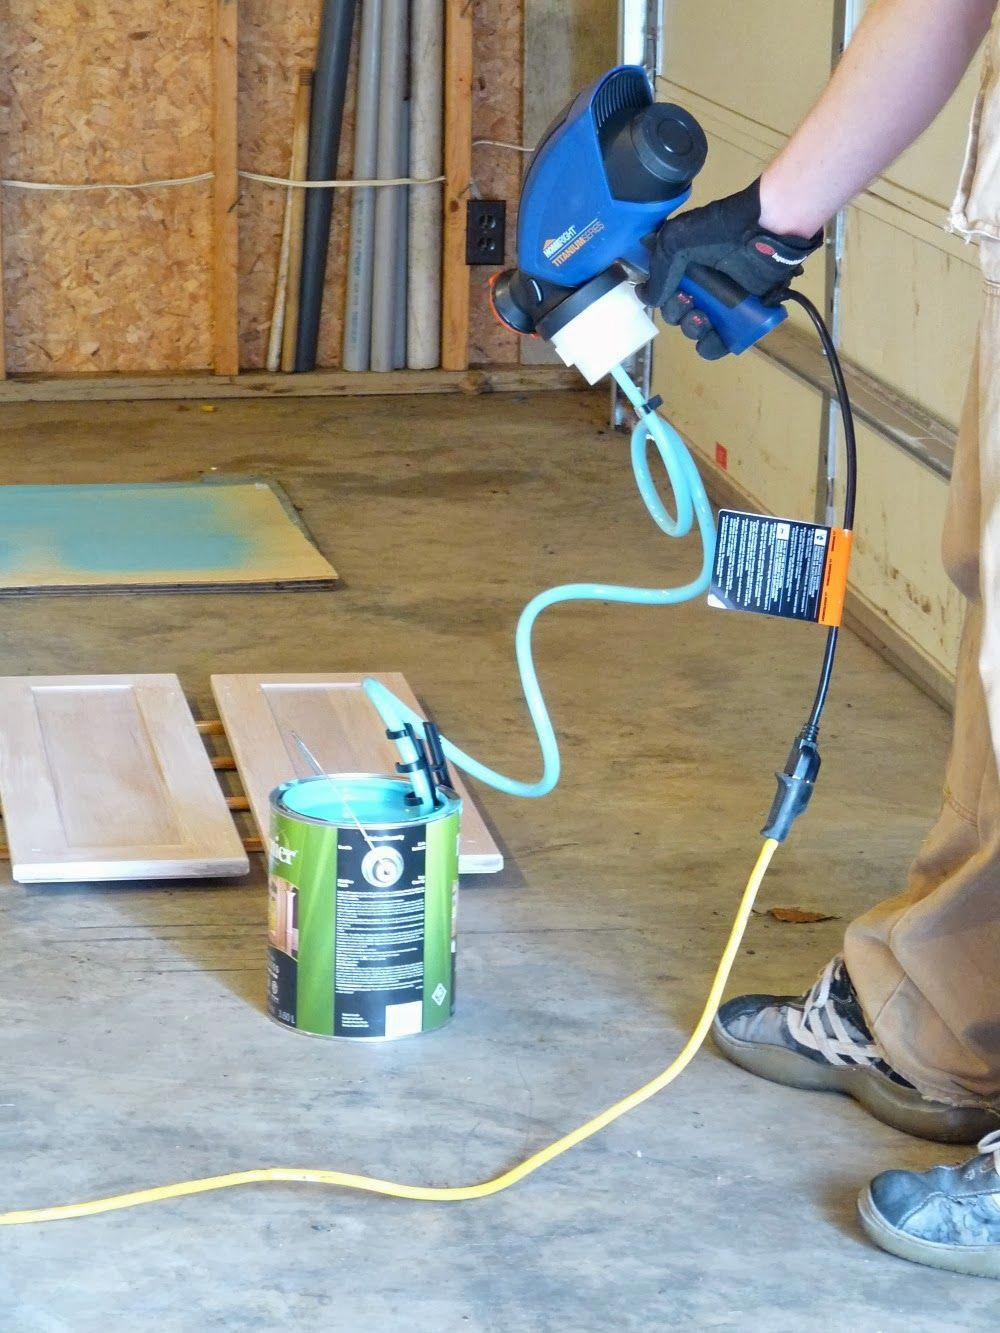 Airless Paint Sprayer No Compressor Needed